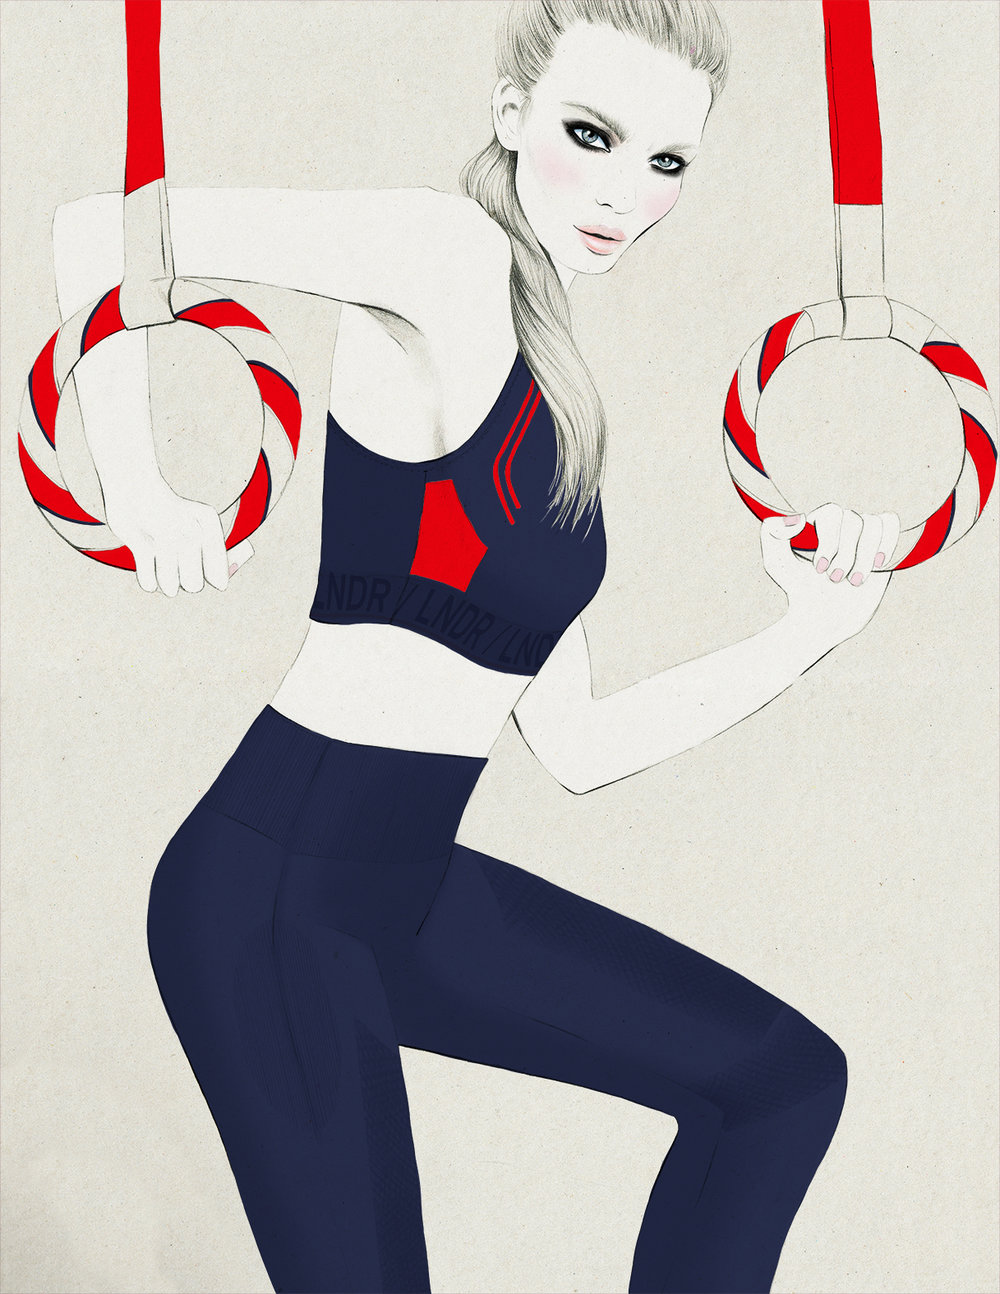 Kelly Thompson blog Melbourne fitness illustration www.kellythompsoncreative.com